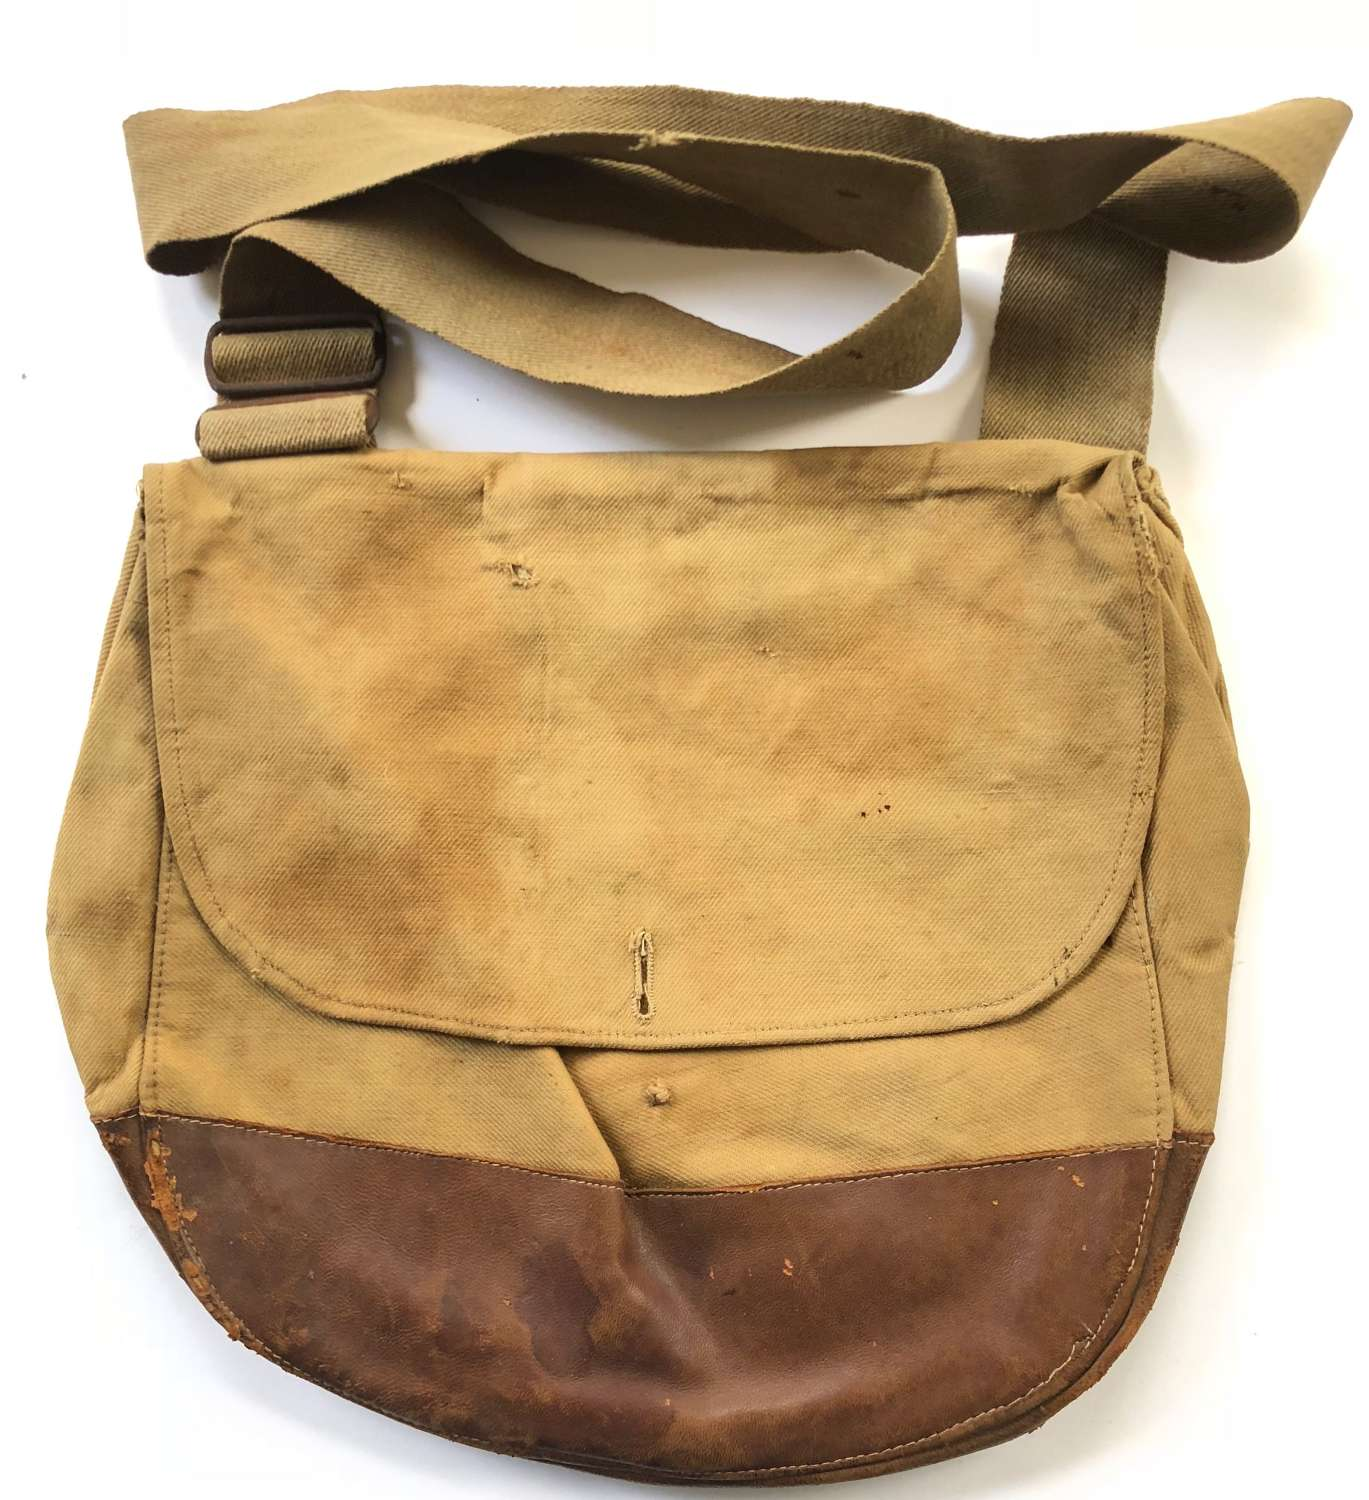 WW1 British Officer's Side Bag.